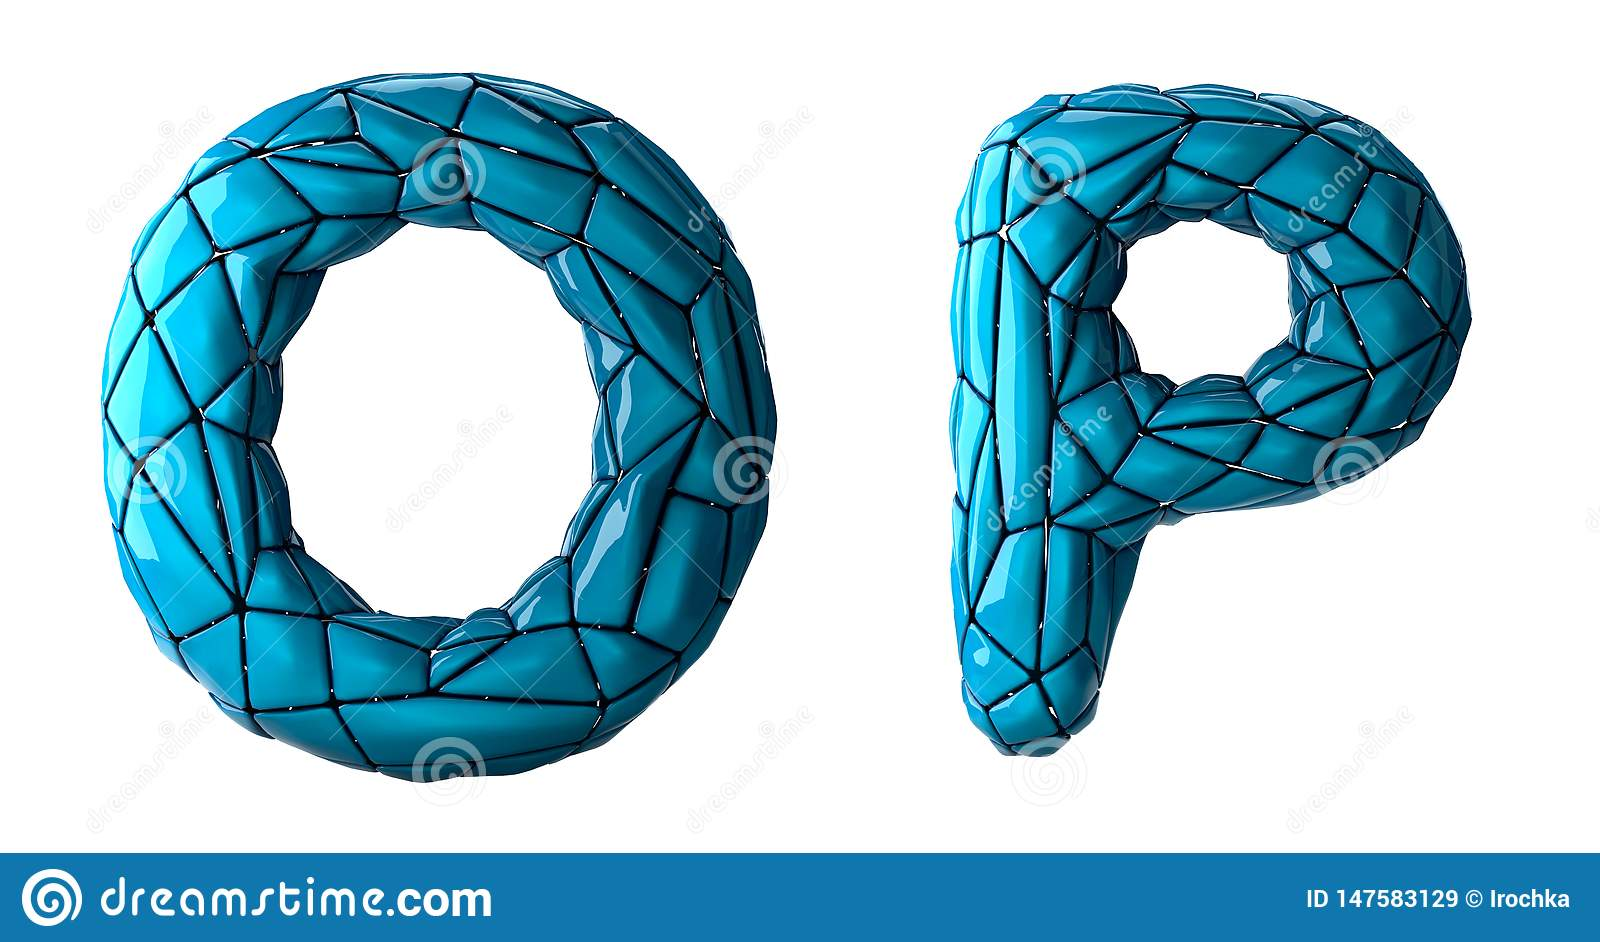 Realistic 3D letters set O, P made of low poly style. Collection symbols of low poly style blue color plastic isolated